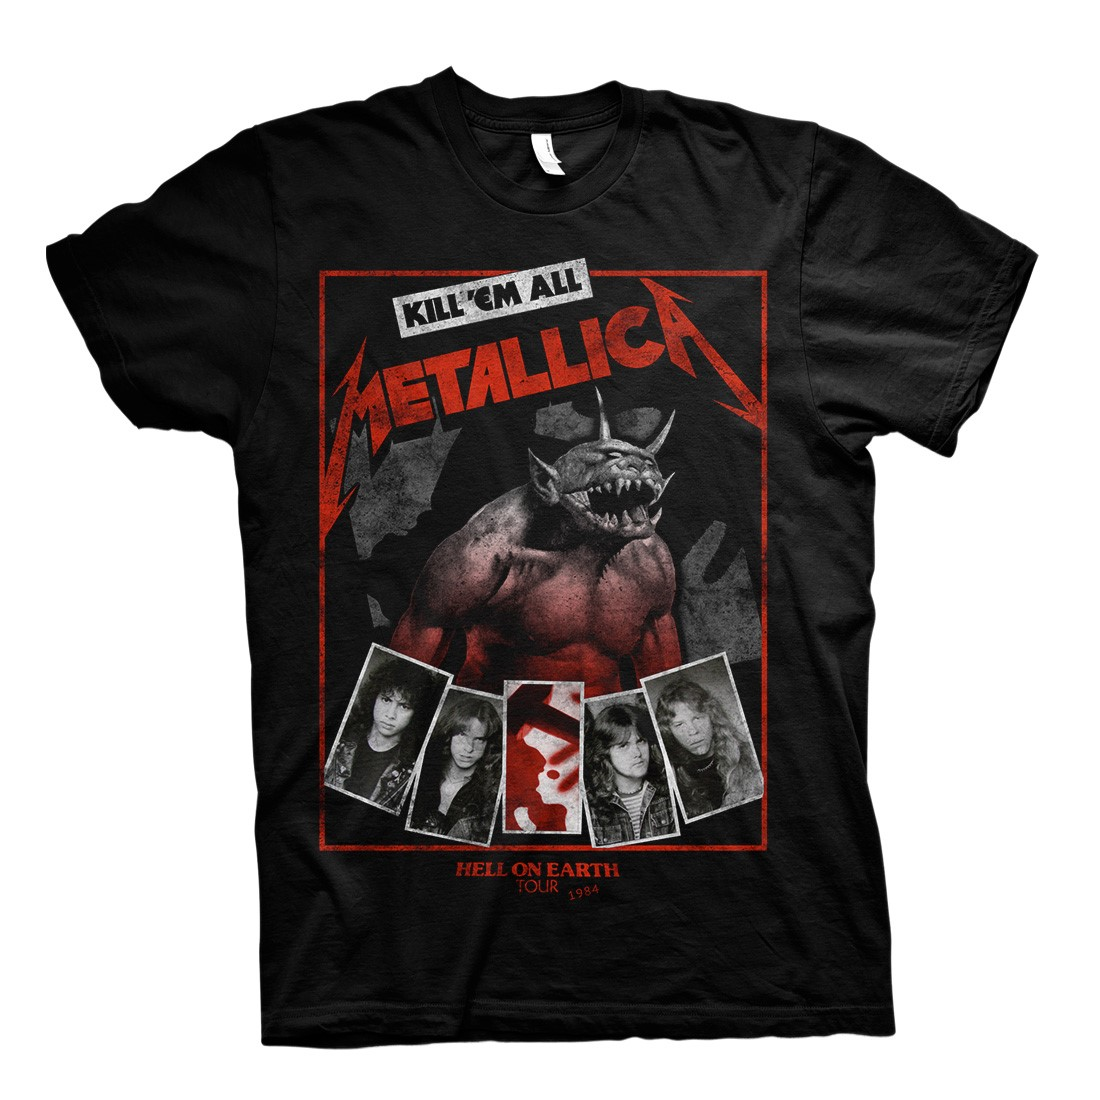 Hell On Earth - Red And Black Tee - Metallica